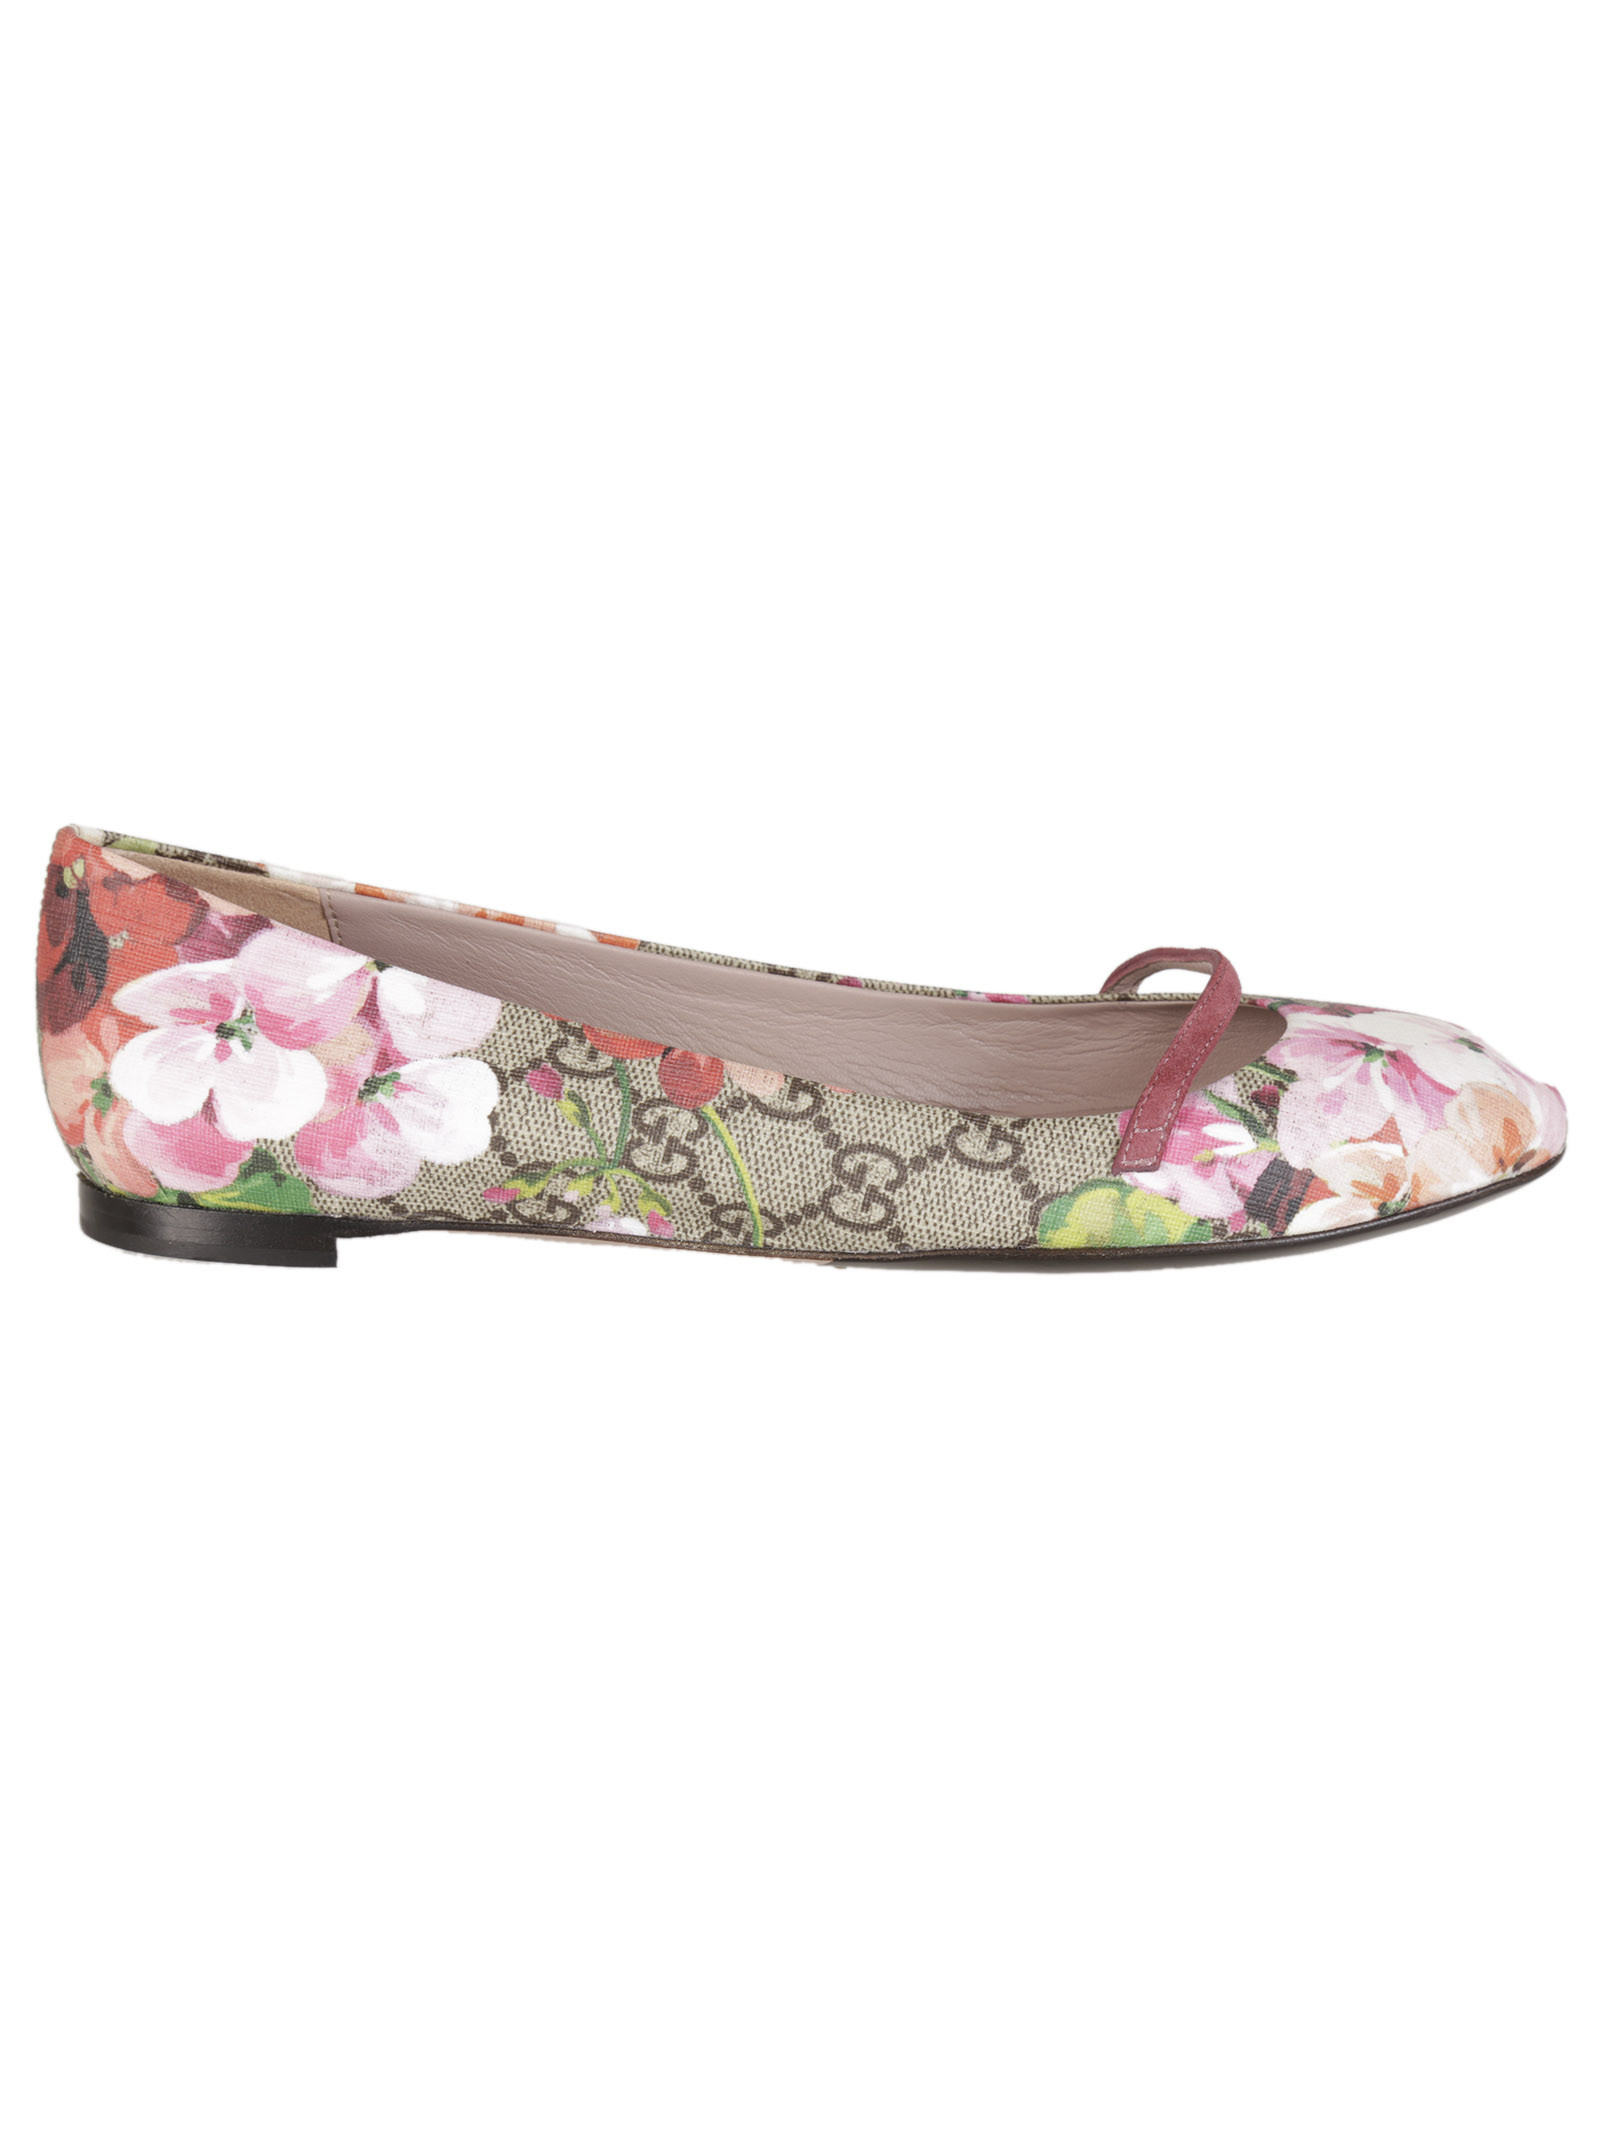 gucci gucci gg blooms ballerinas pink women 39 s flat shoes italist. Black Bedroom Furniture Sets. Home Design Ideas